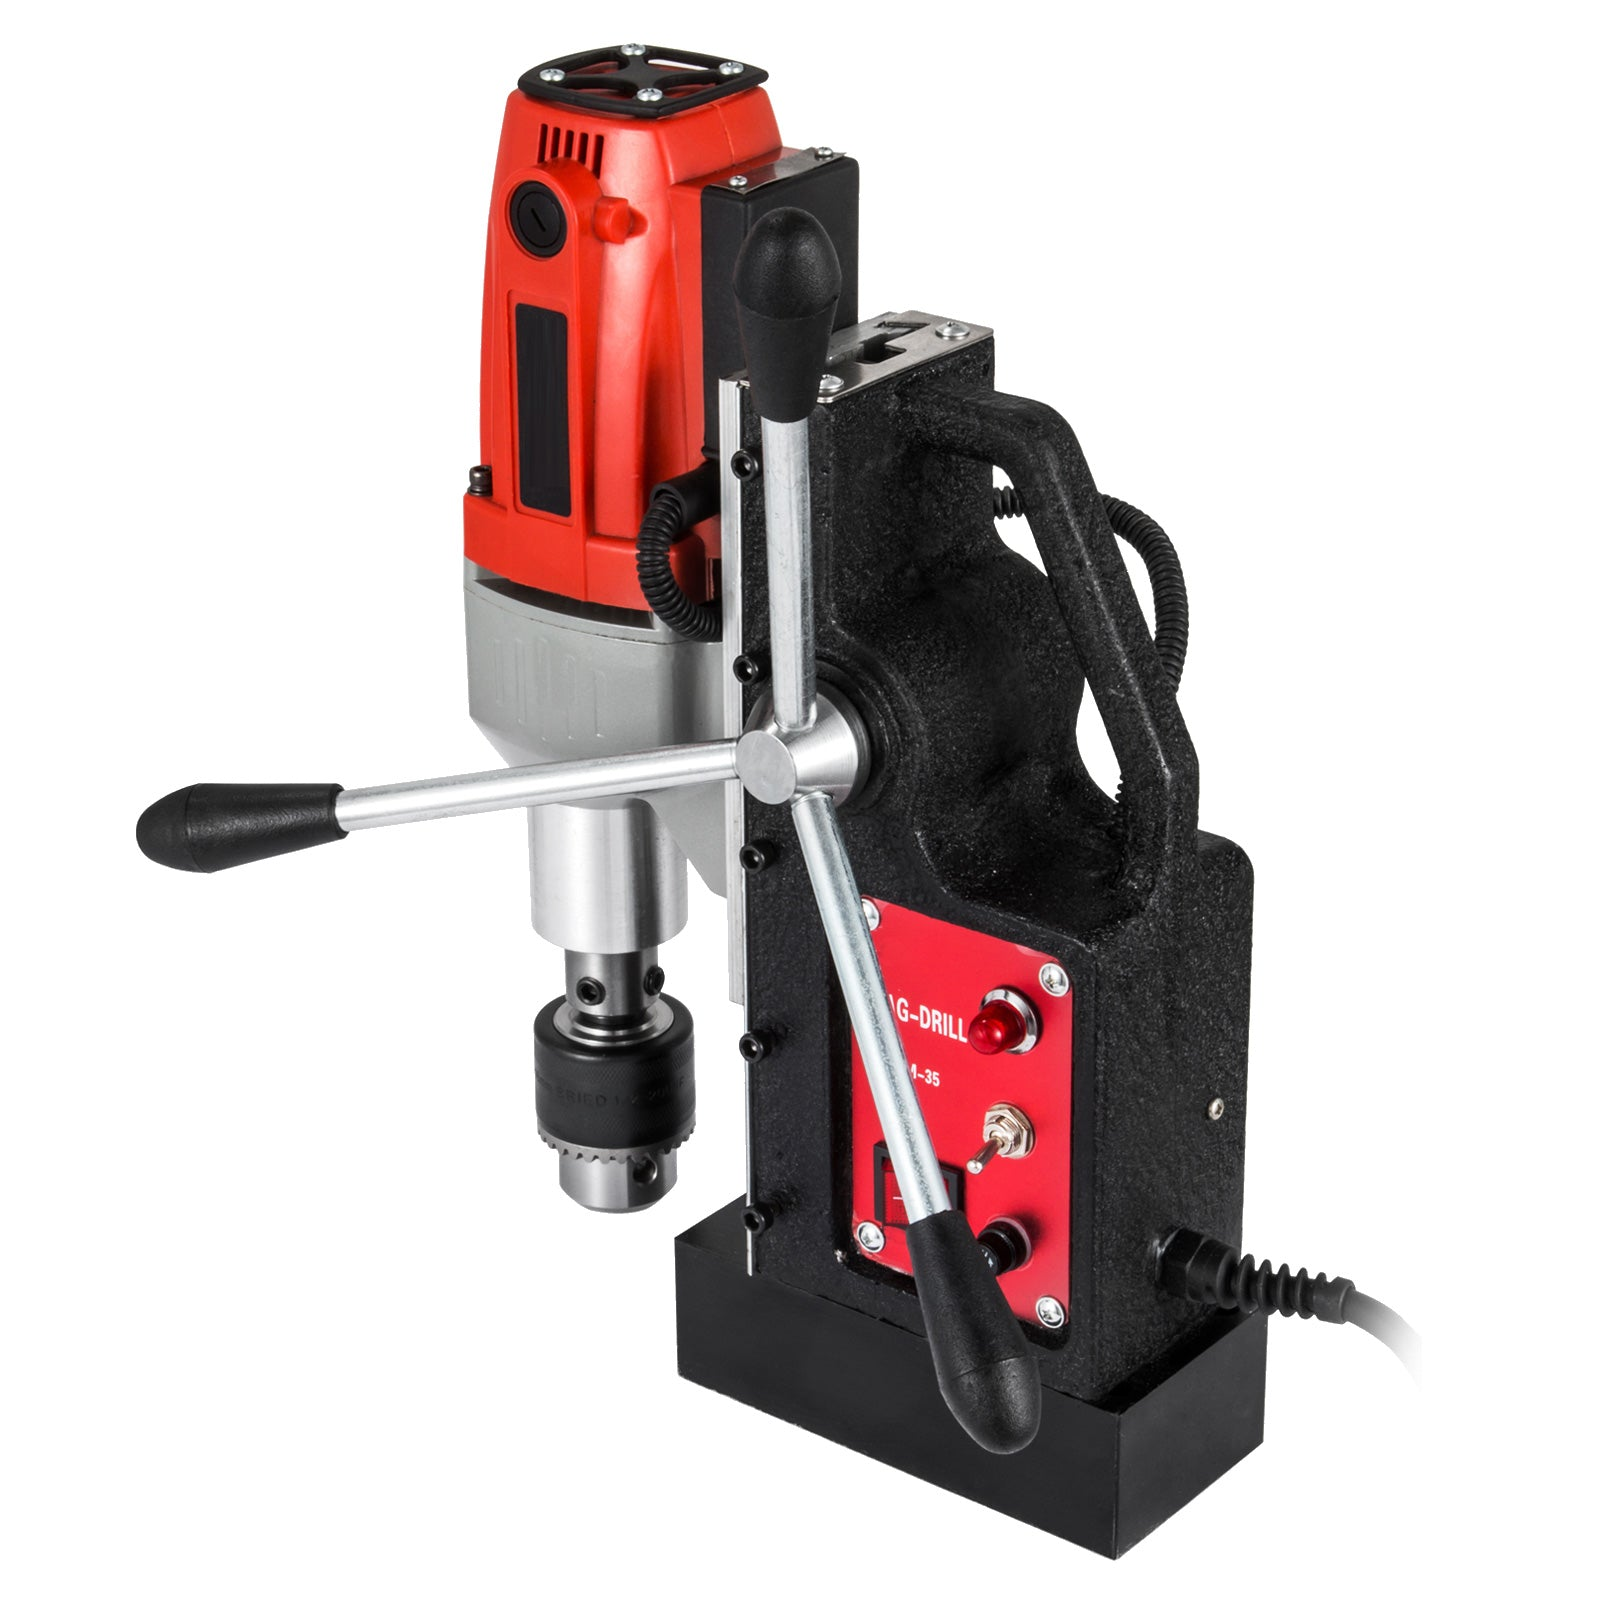 Brm-35 Magnetic Drill Press 12-35mm Boring Tapping 2250 Lbs Magnet Force 980w